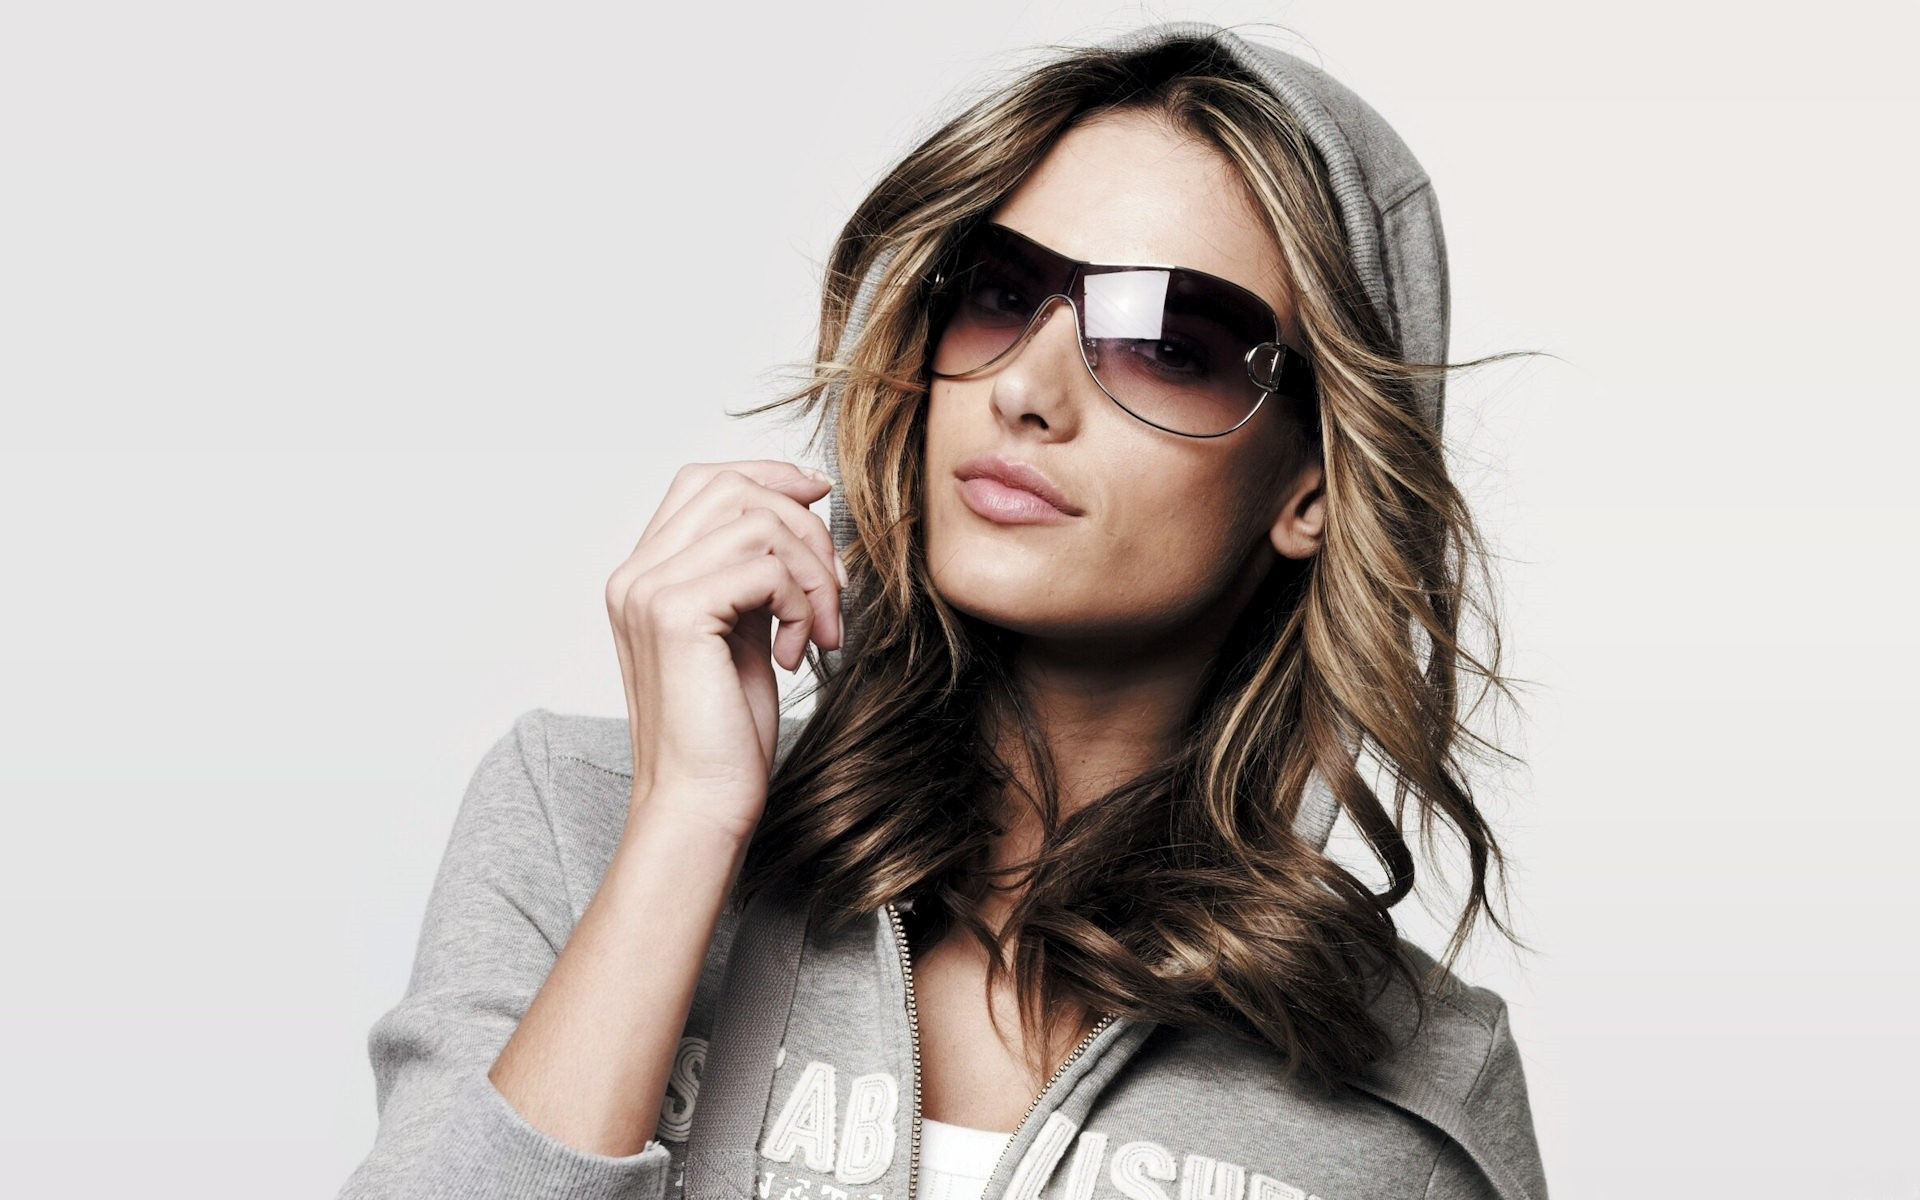 -Women-Models-Alessandra-Ambrosio-Sunglasses-Hoodie-Fresh-New-Hd-Wallpaper--